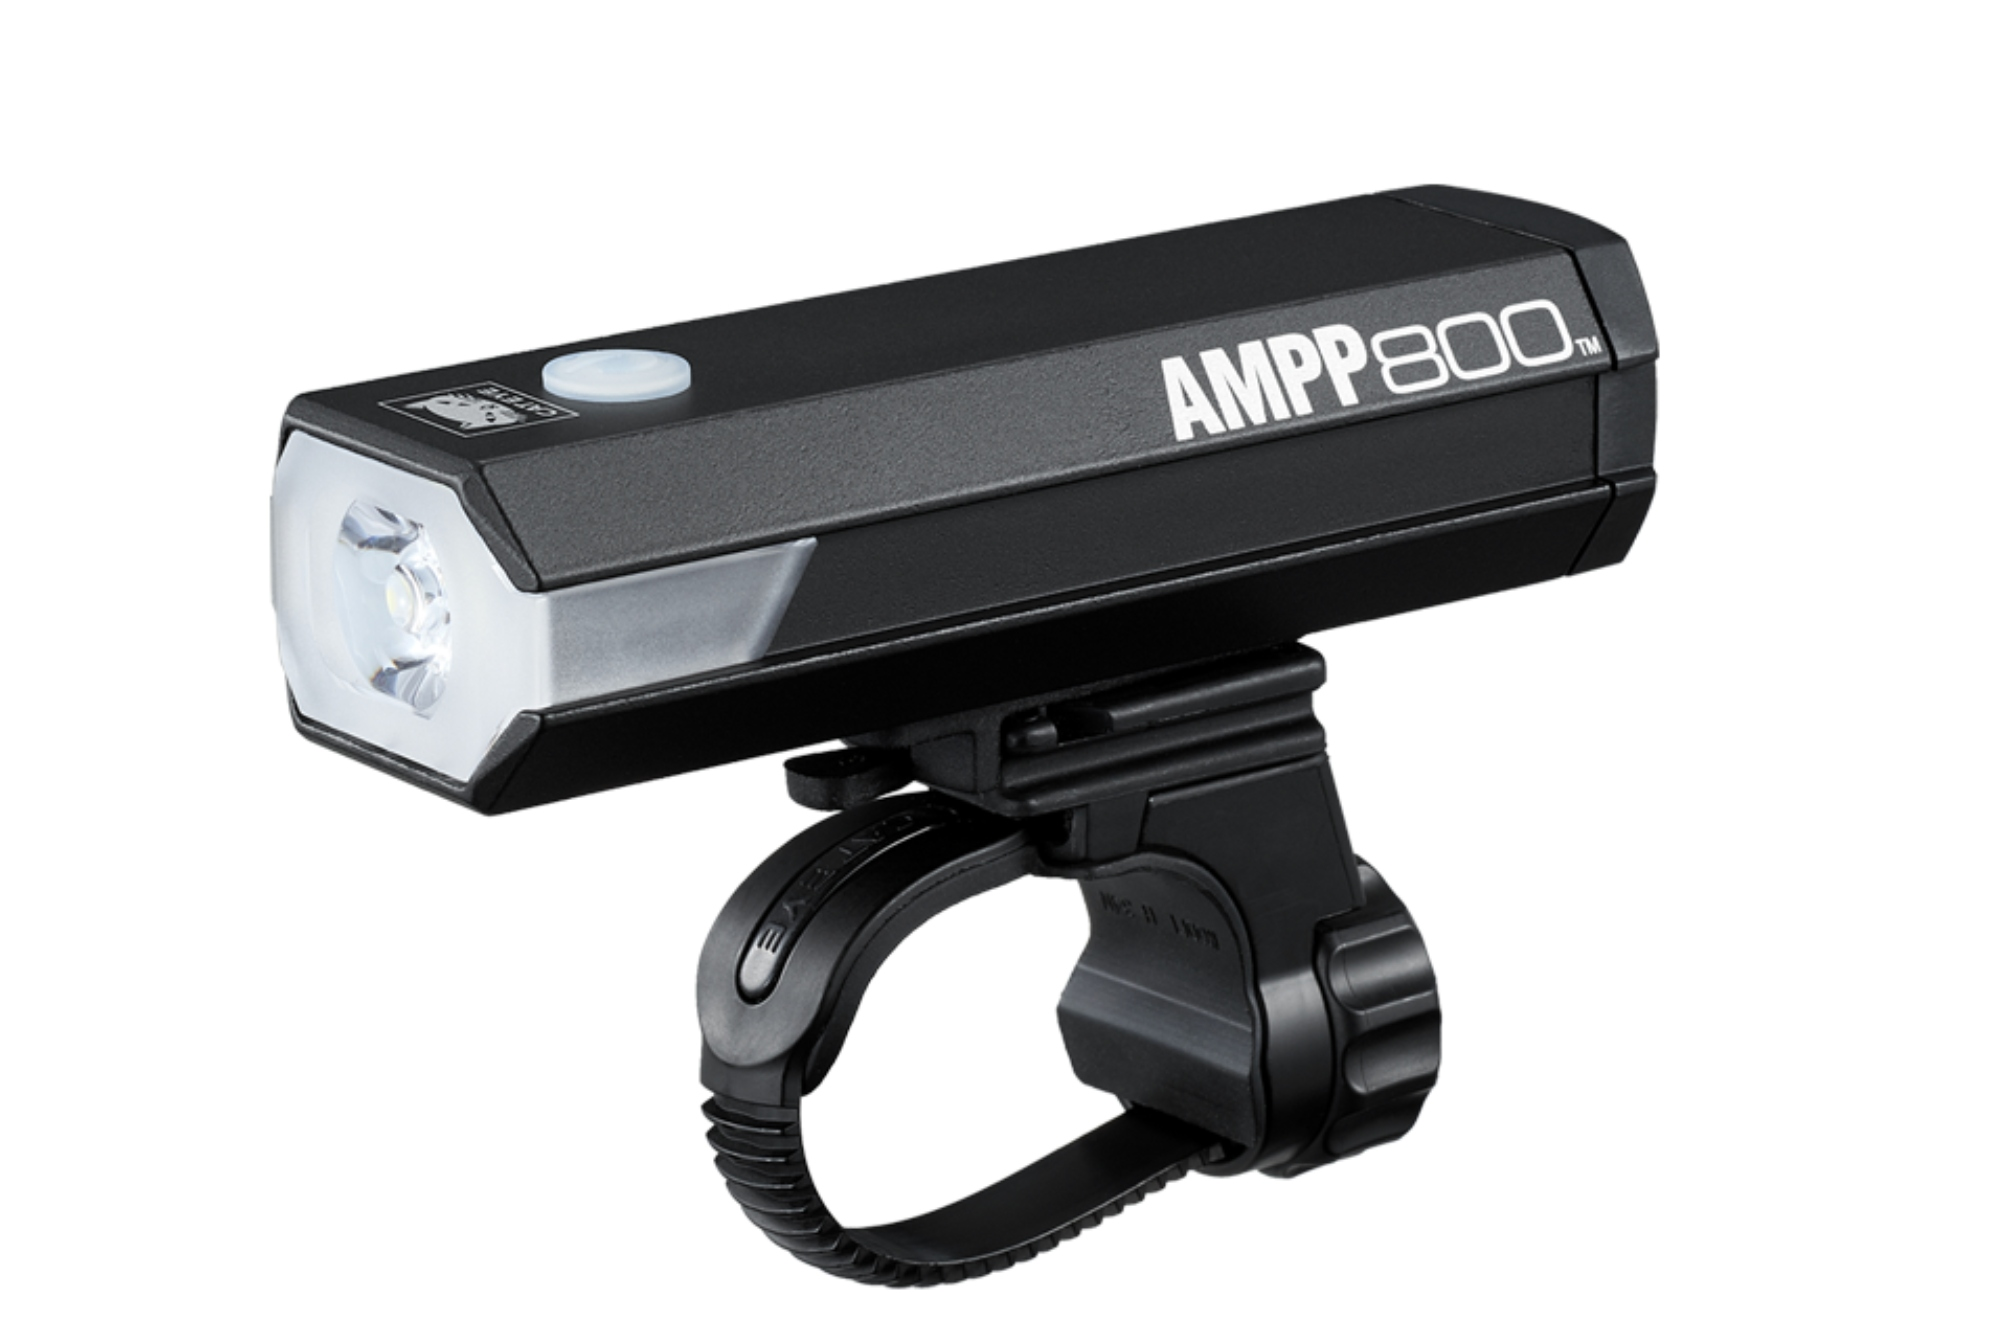 Cateye AMPP 800 front light review